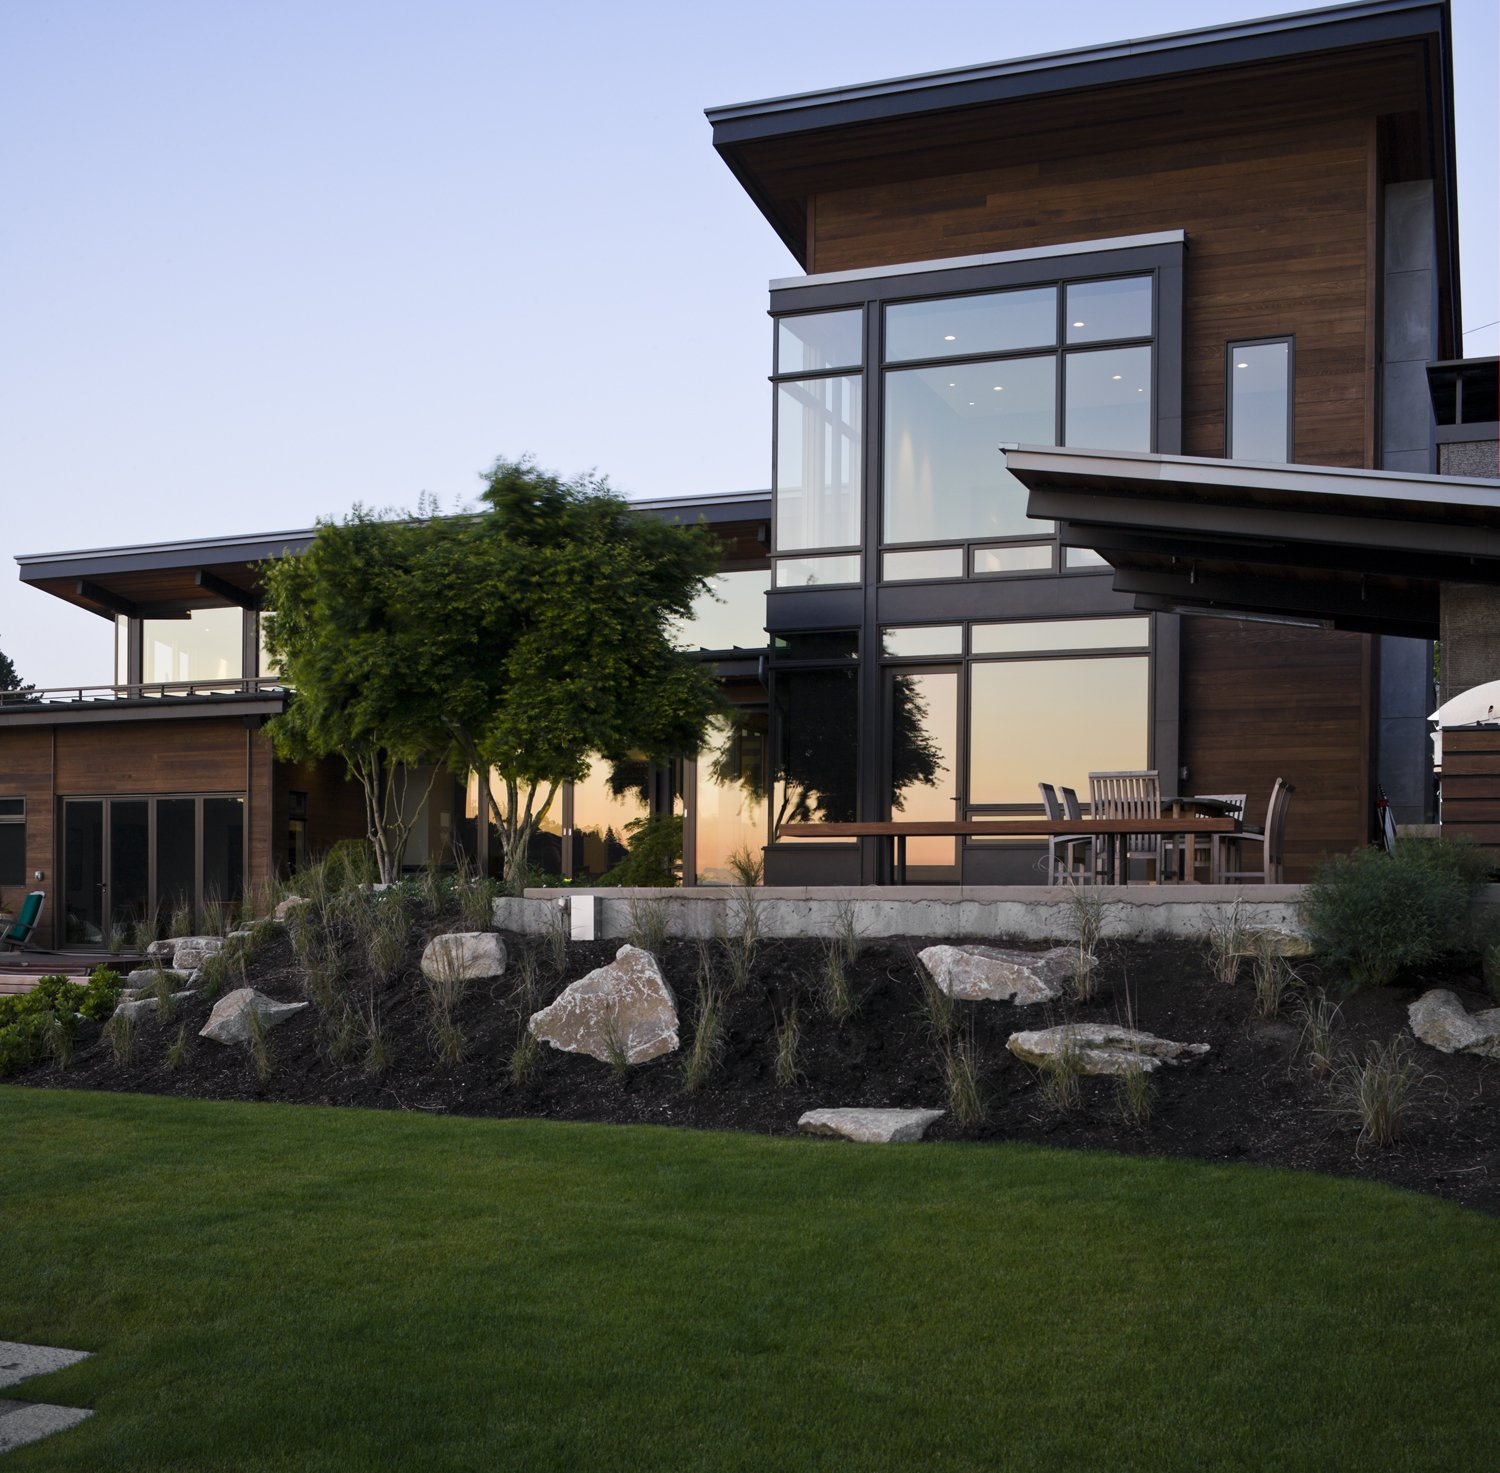 Mountain View Residence Tagged: Outdoor, Back Yard, Grass, and Small Patio, Porch, Deck.  Mountain View Residence by SkB Architects